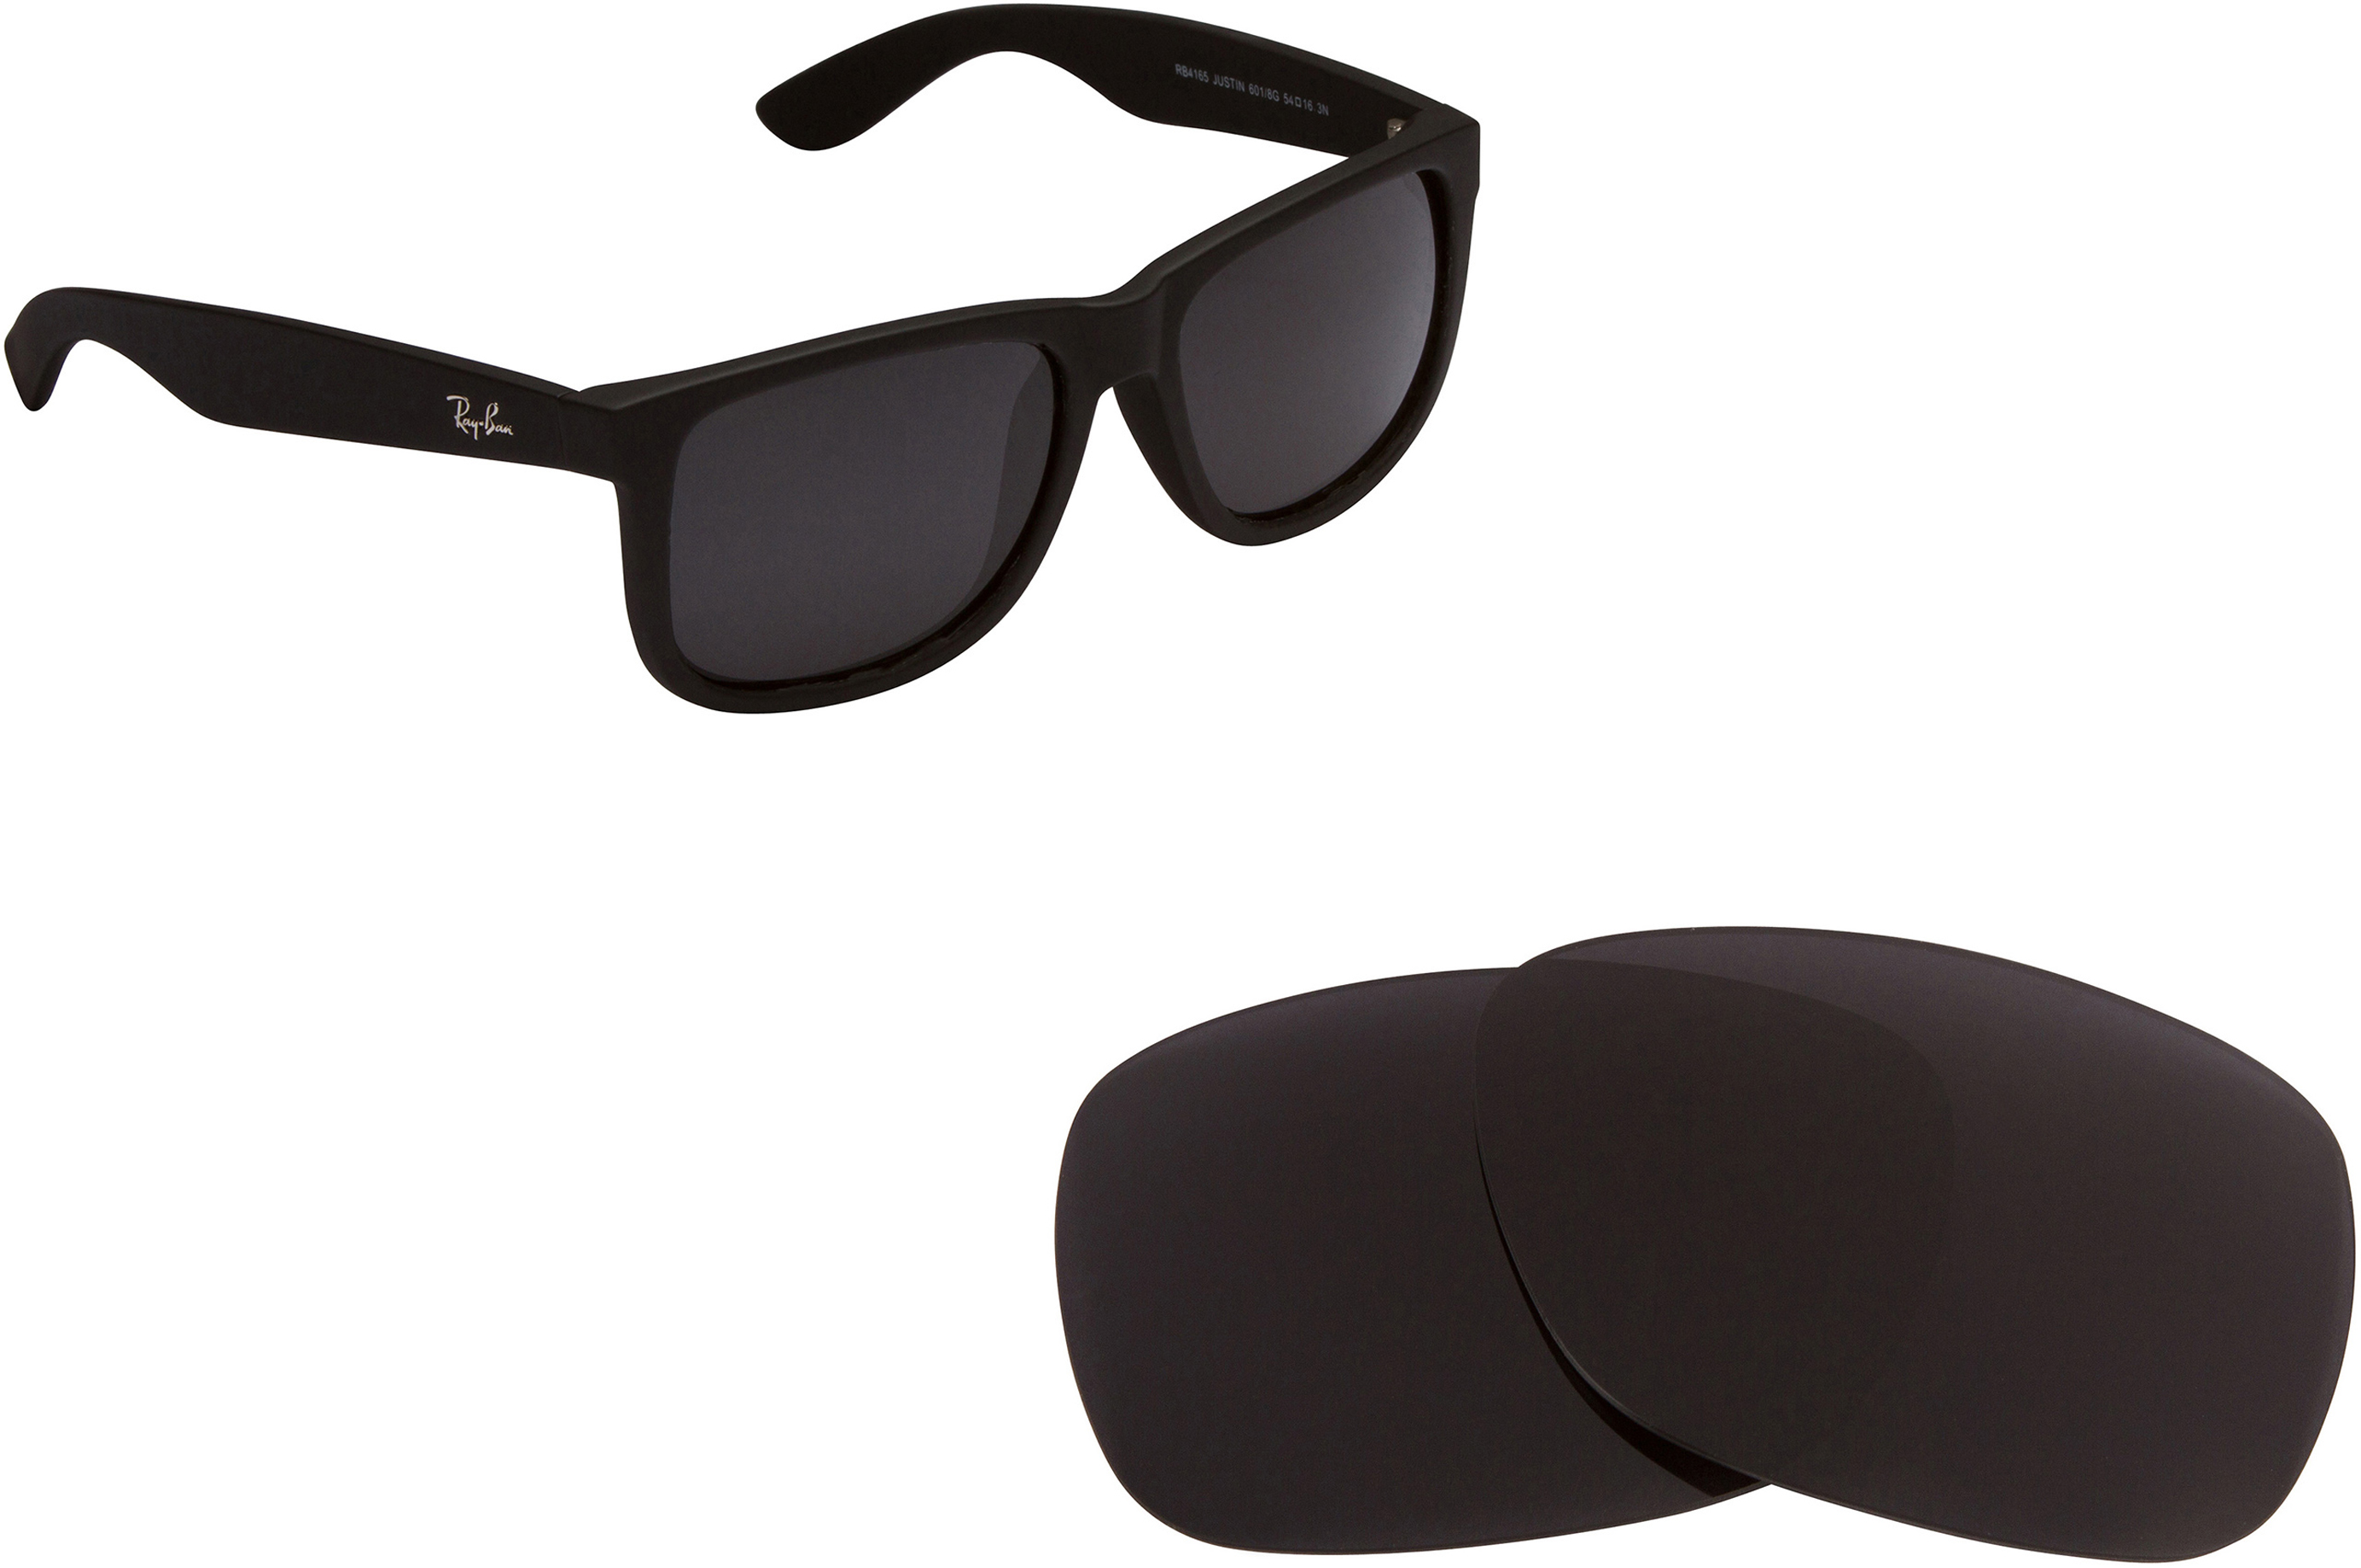 Ray ban sunglasses sale new zealand - Image Is Loading New Seek Polarized Replacement Lenses For Ray Ban